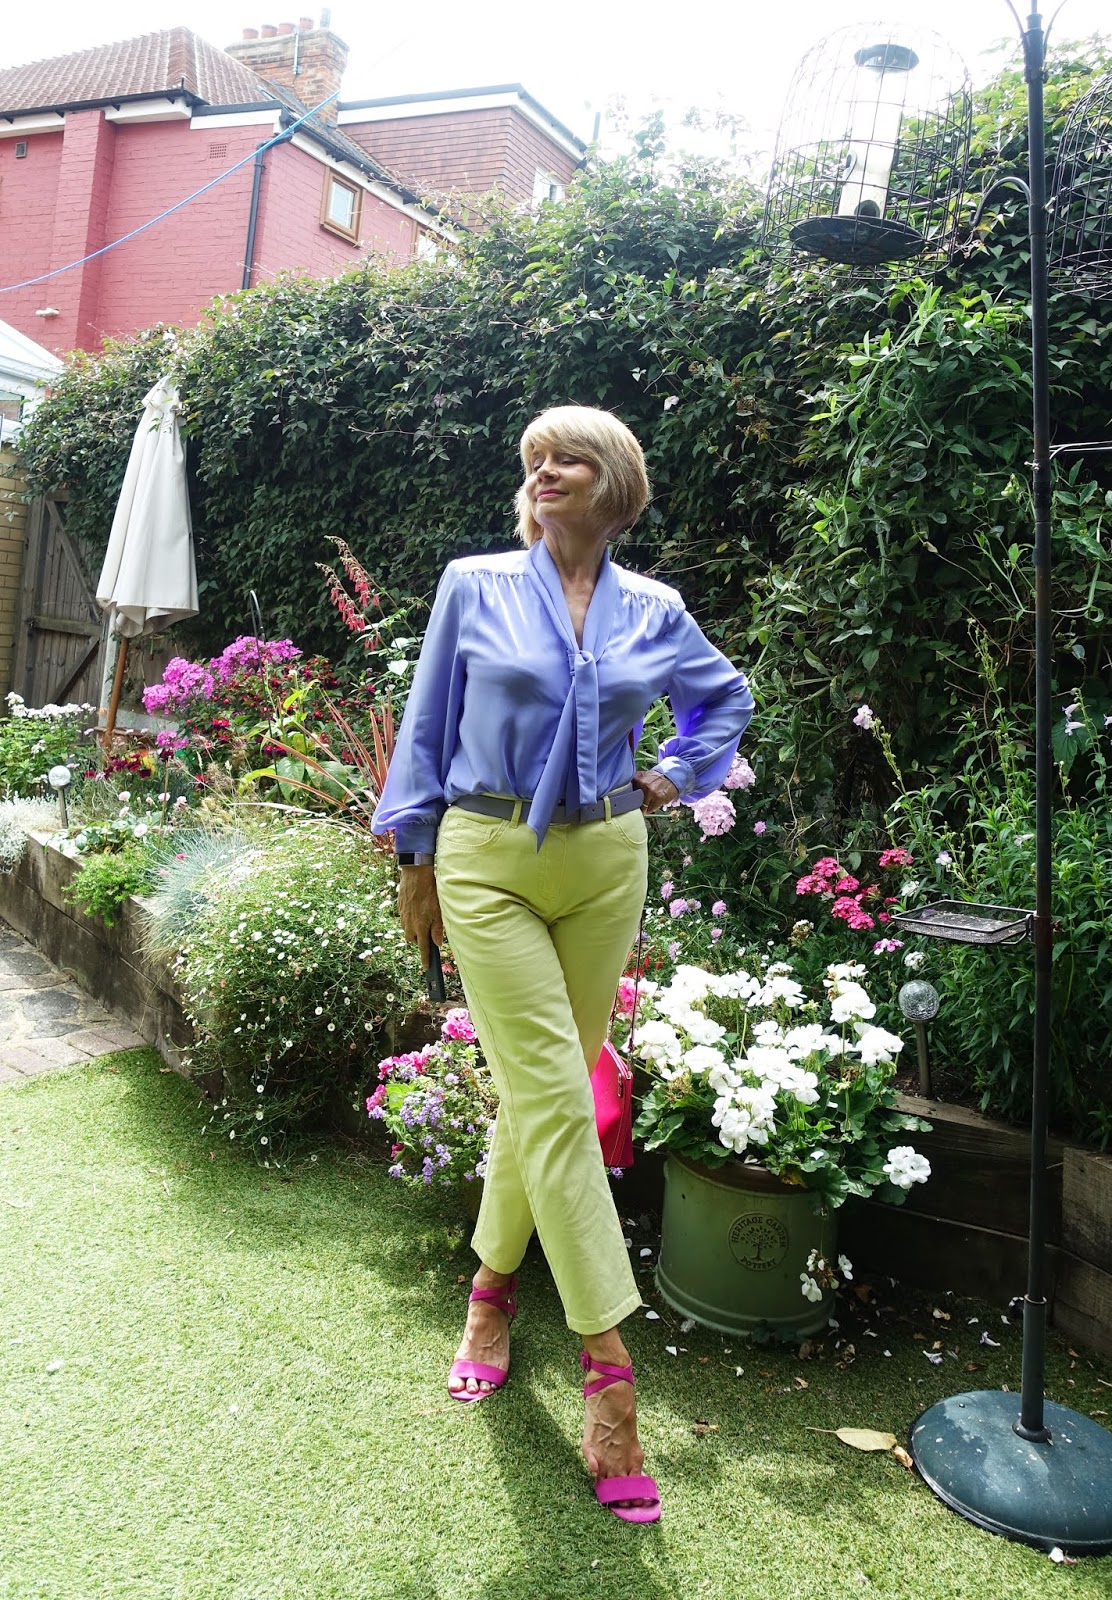 Over 50s blogger Gail Hanlon in lilac and yellow in a summer garden